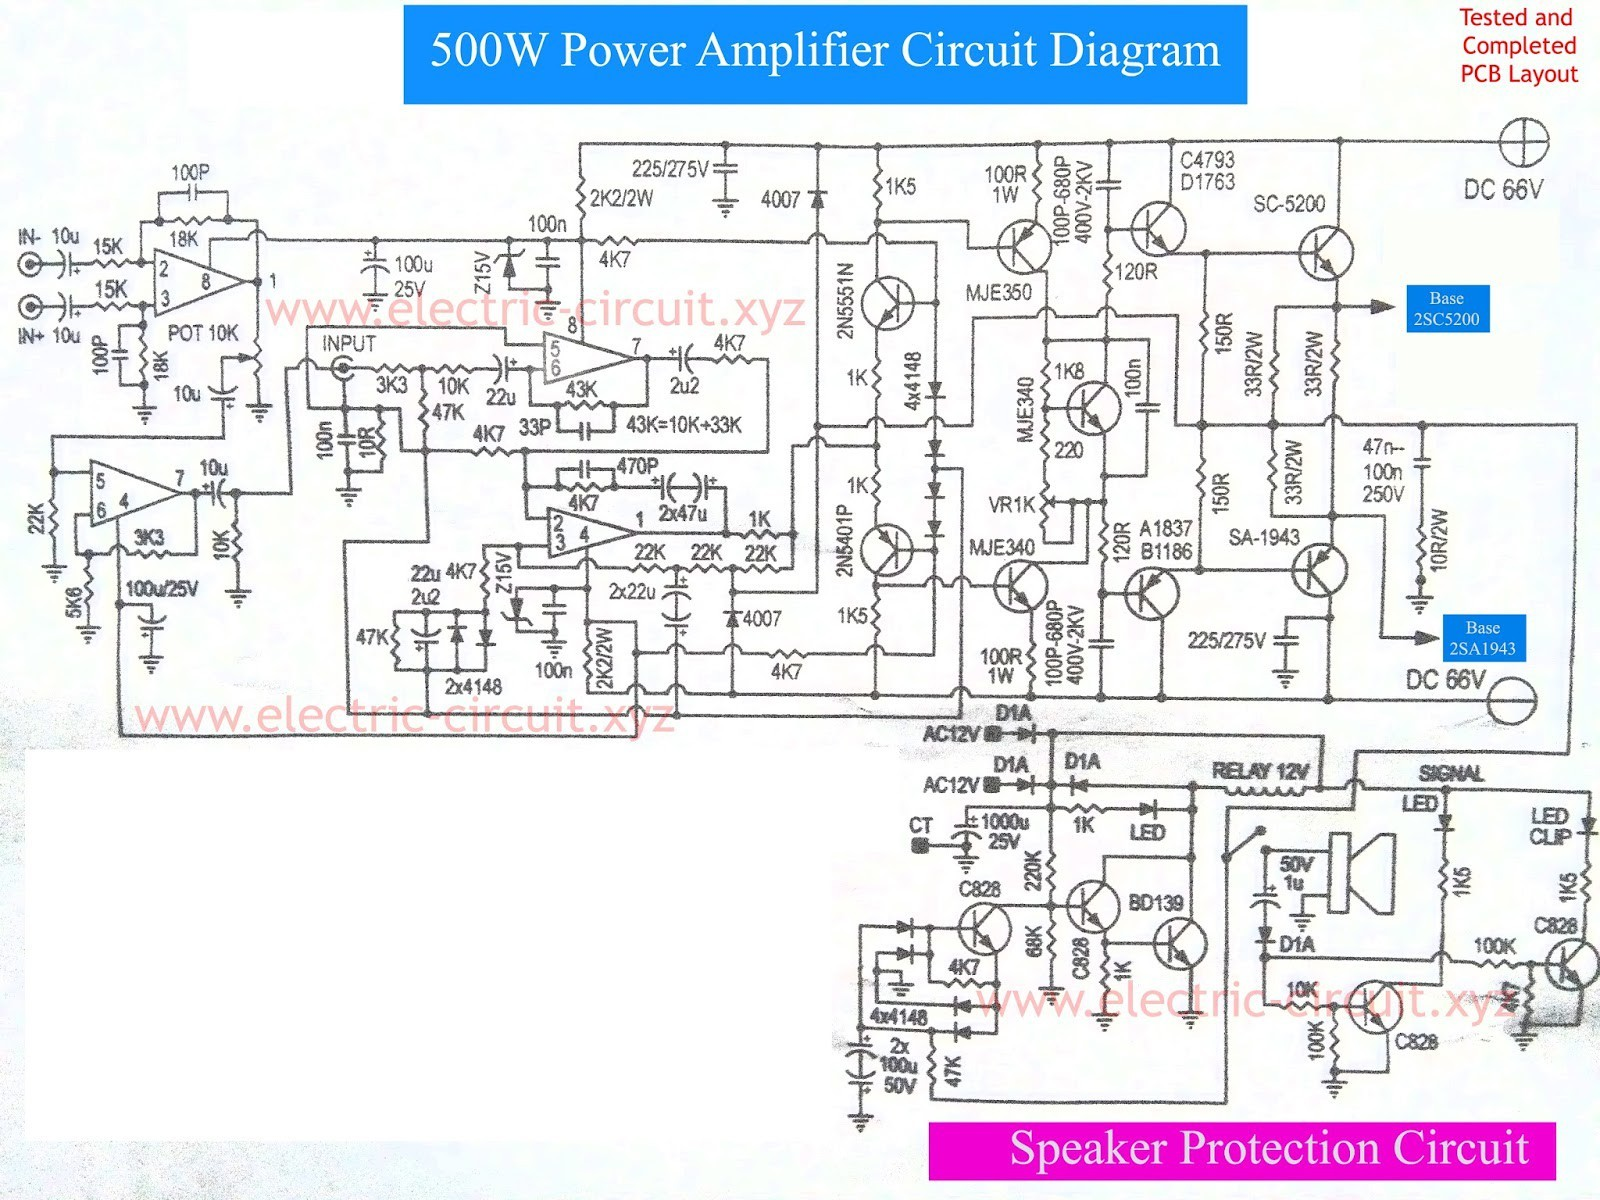 Car Power Amplifier Circuit Diagram Circuit Diagram for Amplifier